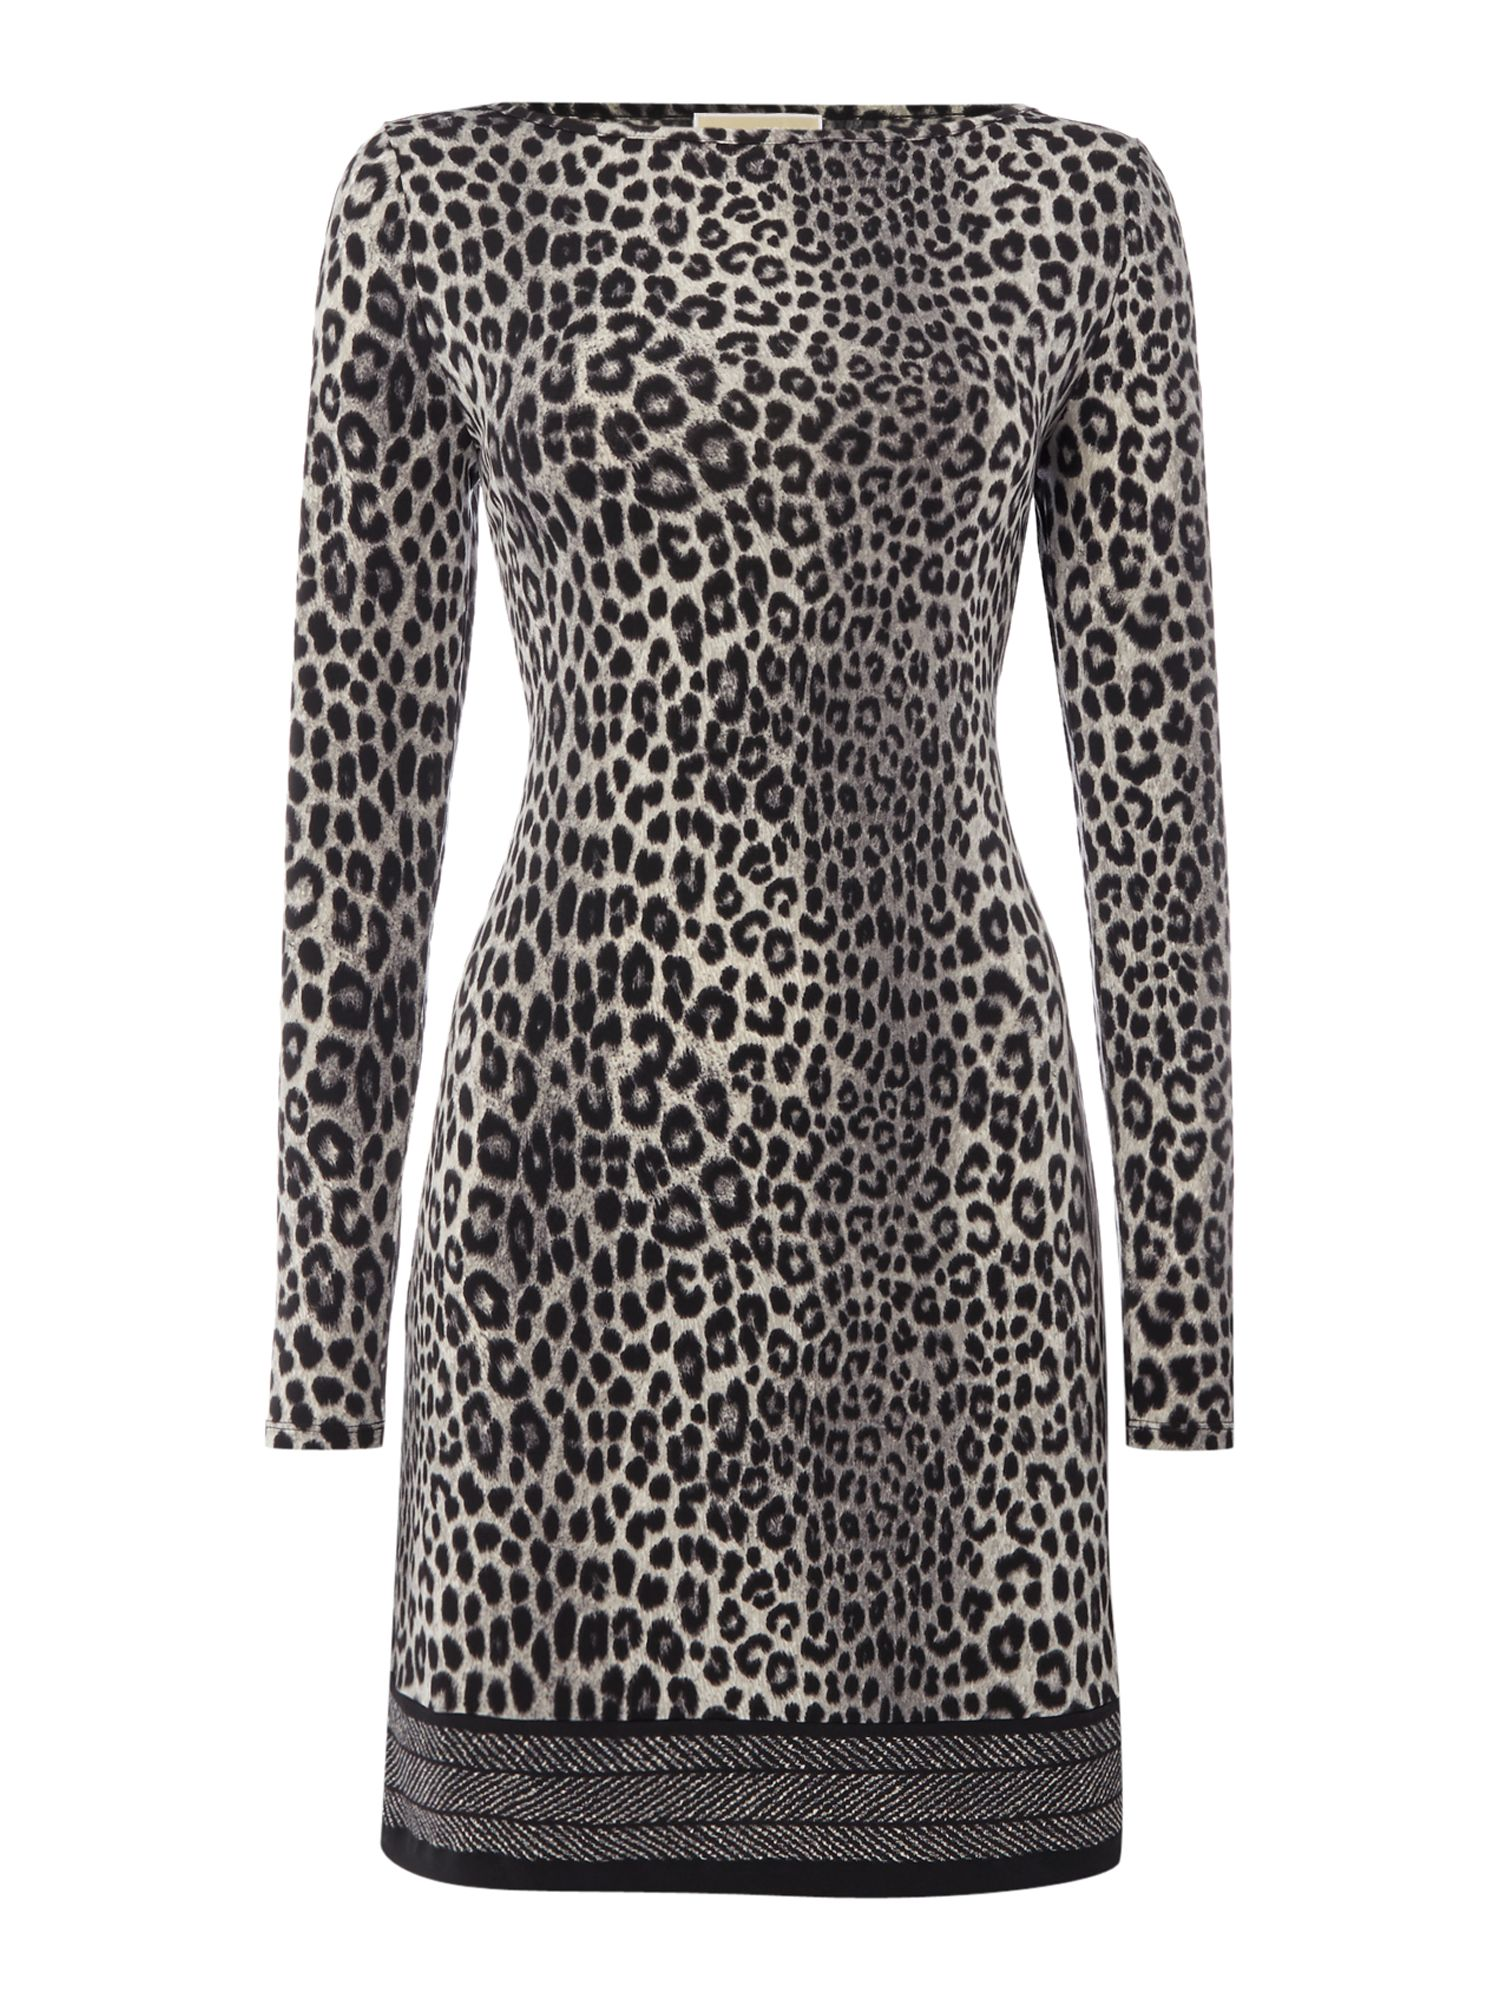 Michael Kors Panther Border Dress, Black